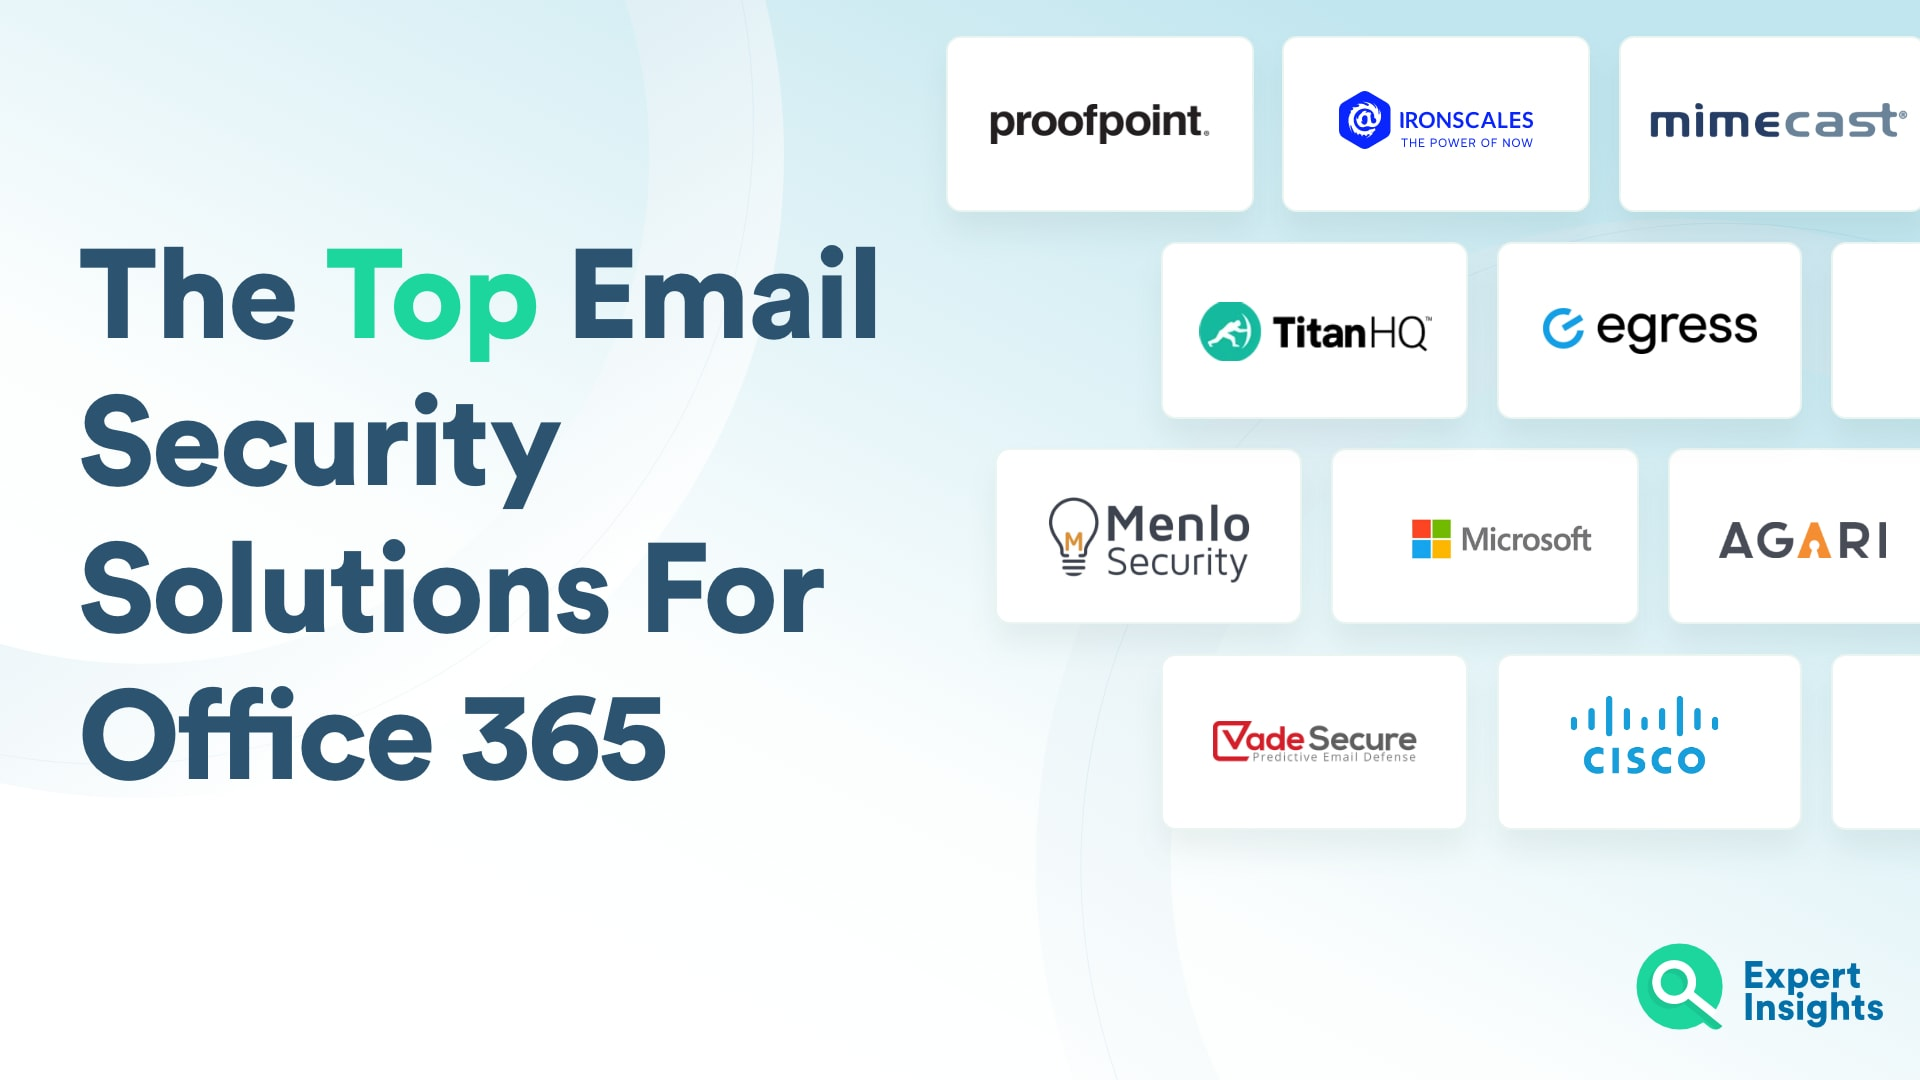 Top Email Security For Office 365